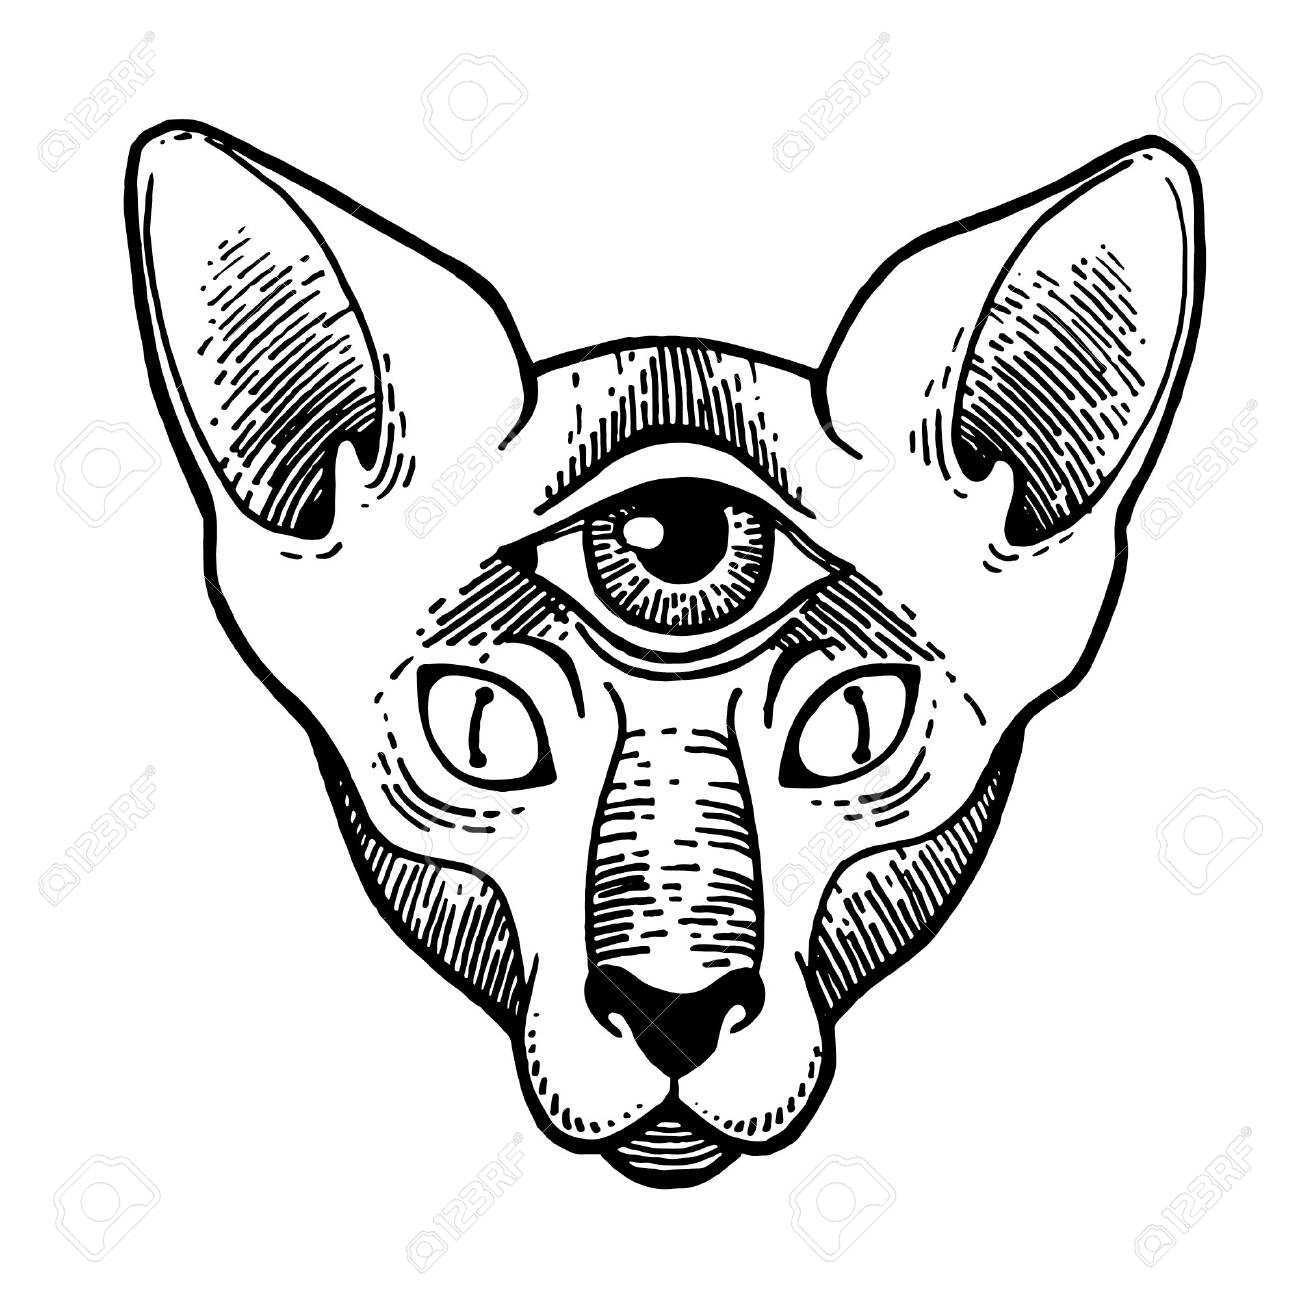 Tattoo Design Of Cat With 3 Eyes Artwork For Print And Textiles